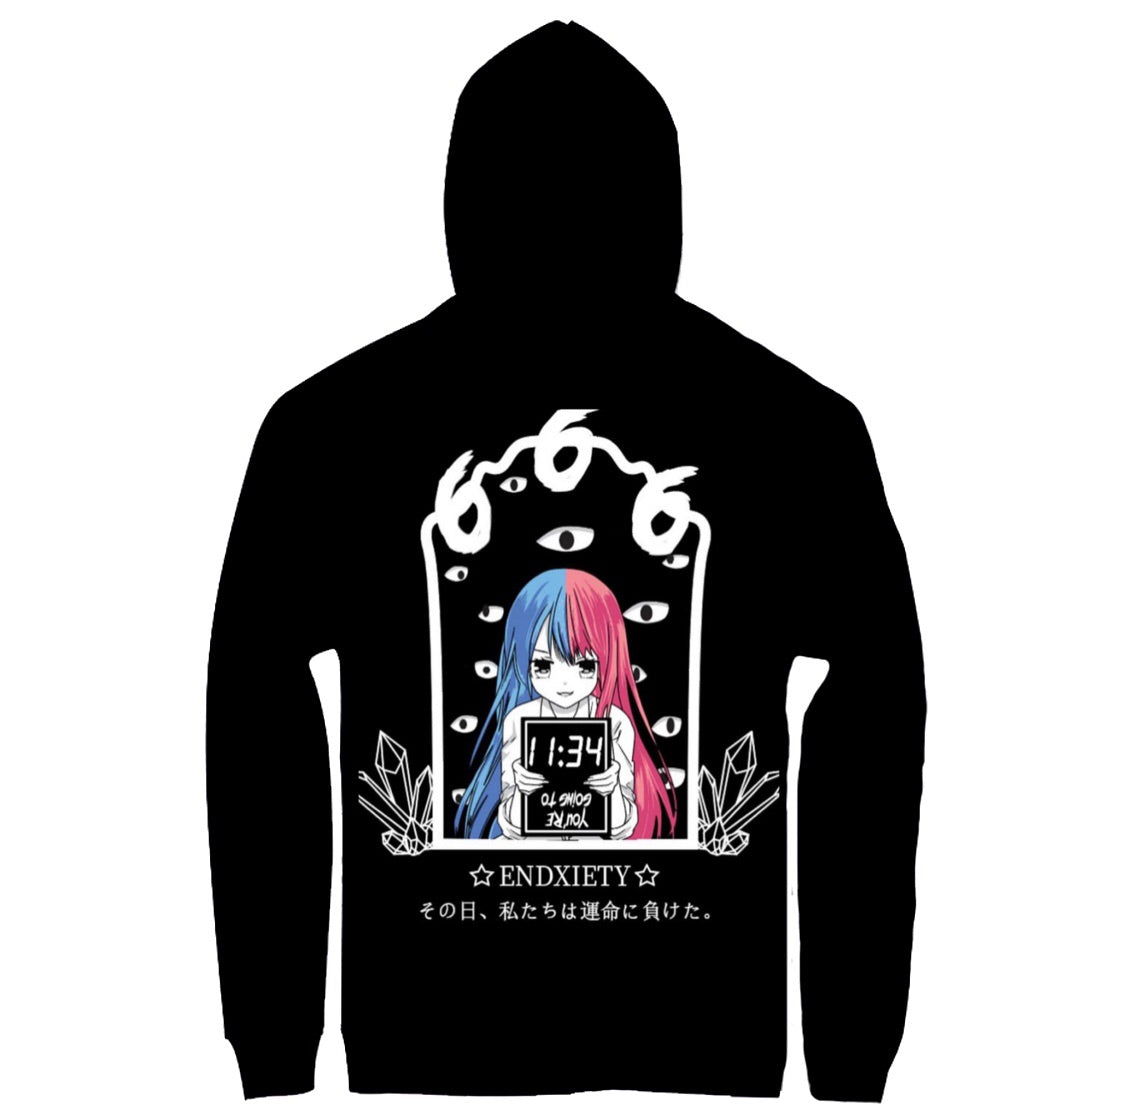 KimojixStyle X Endxiety Collab Hoodie (Click The Link Below To Purchase!)